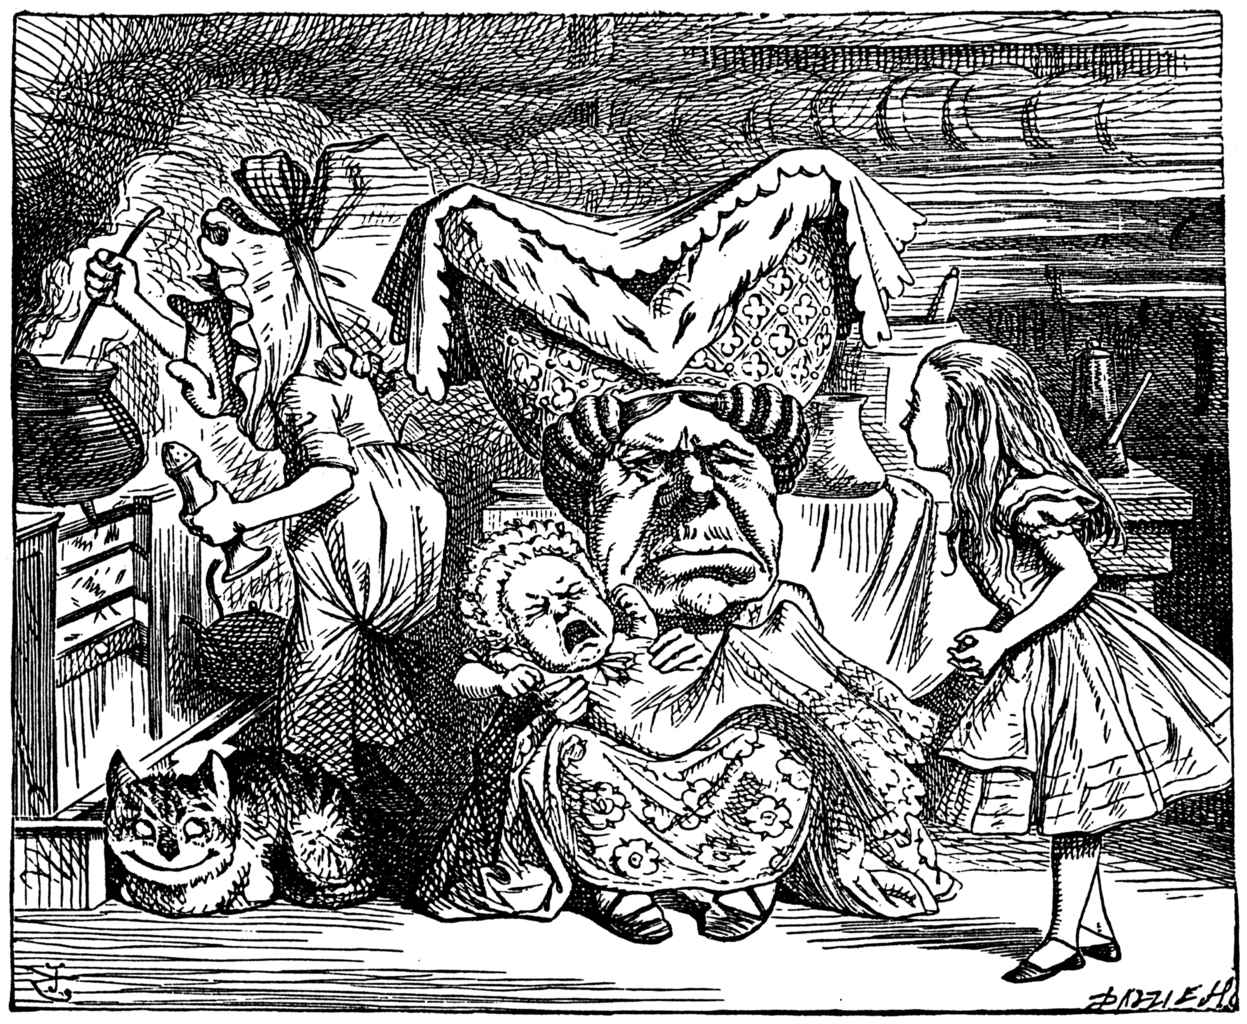 https://commons.wikimedia.org/wiki/File:Alice_par_John_Tenniel_21.png